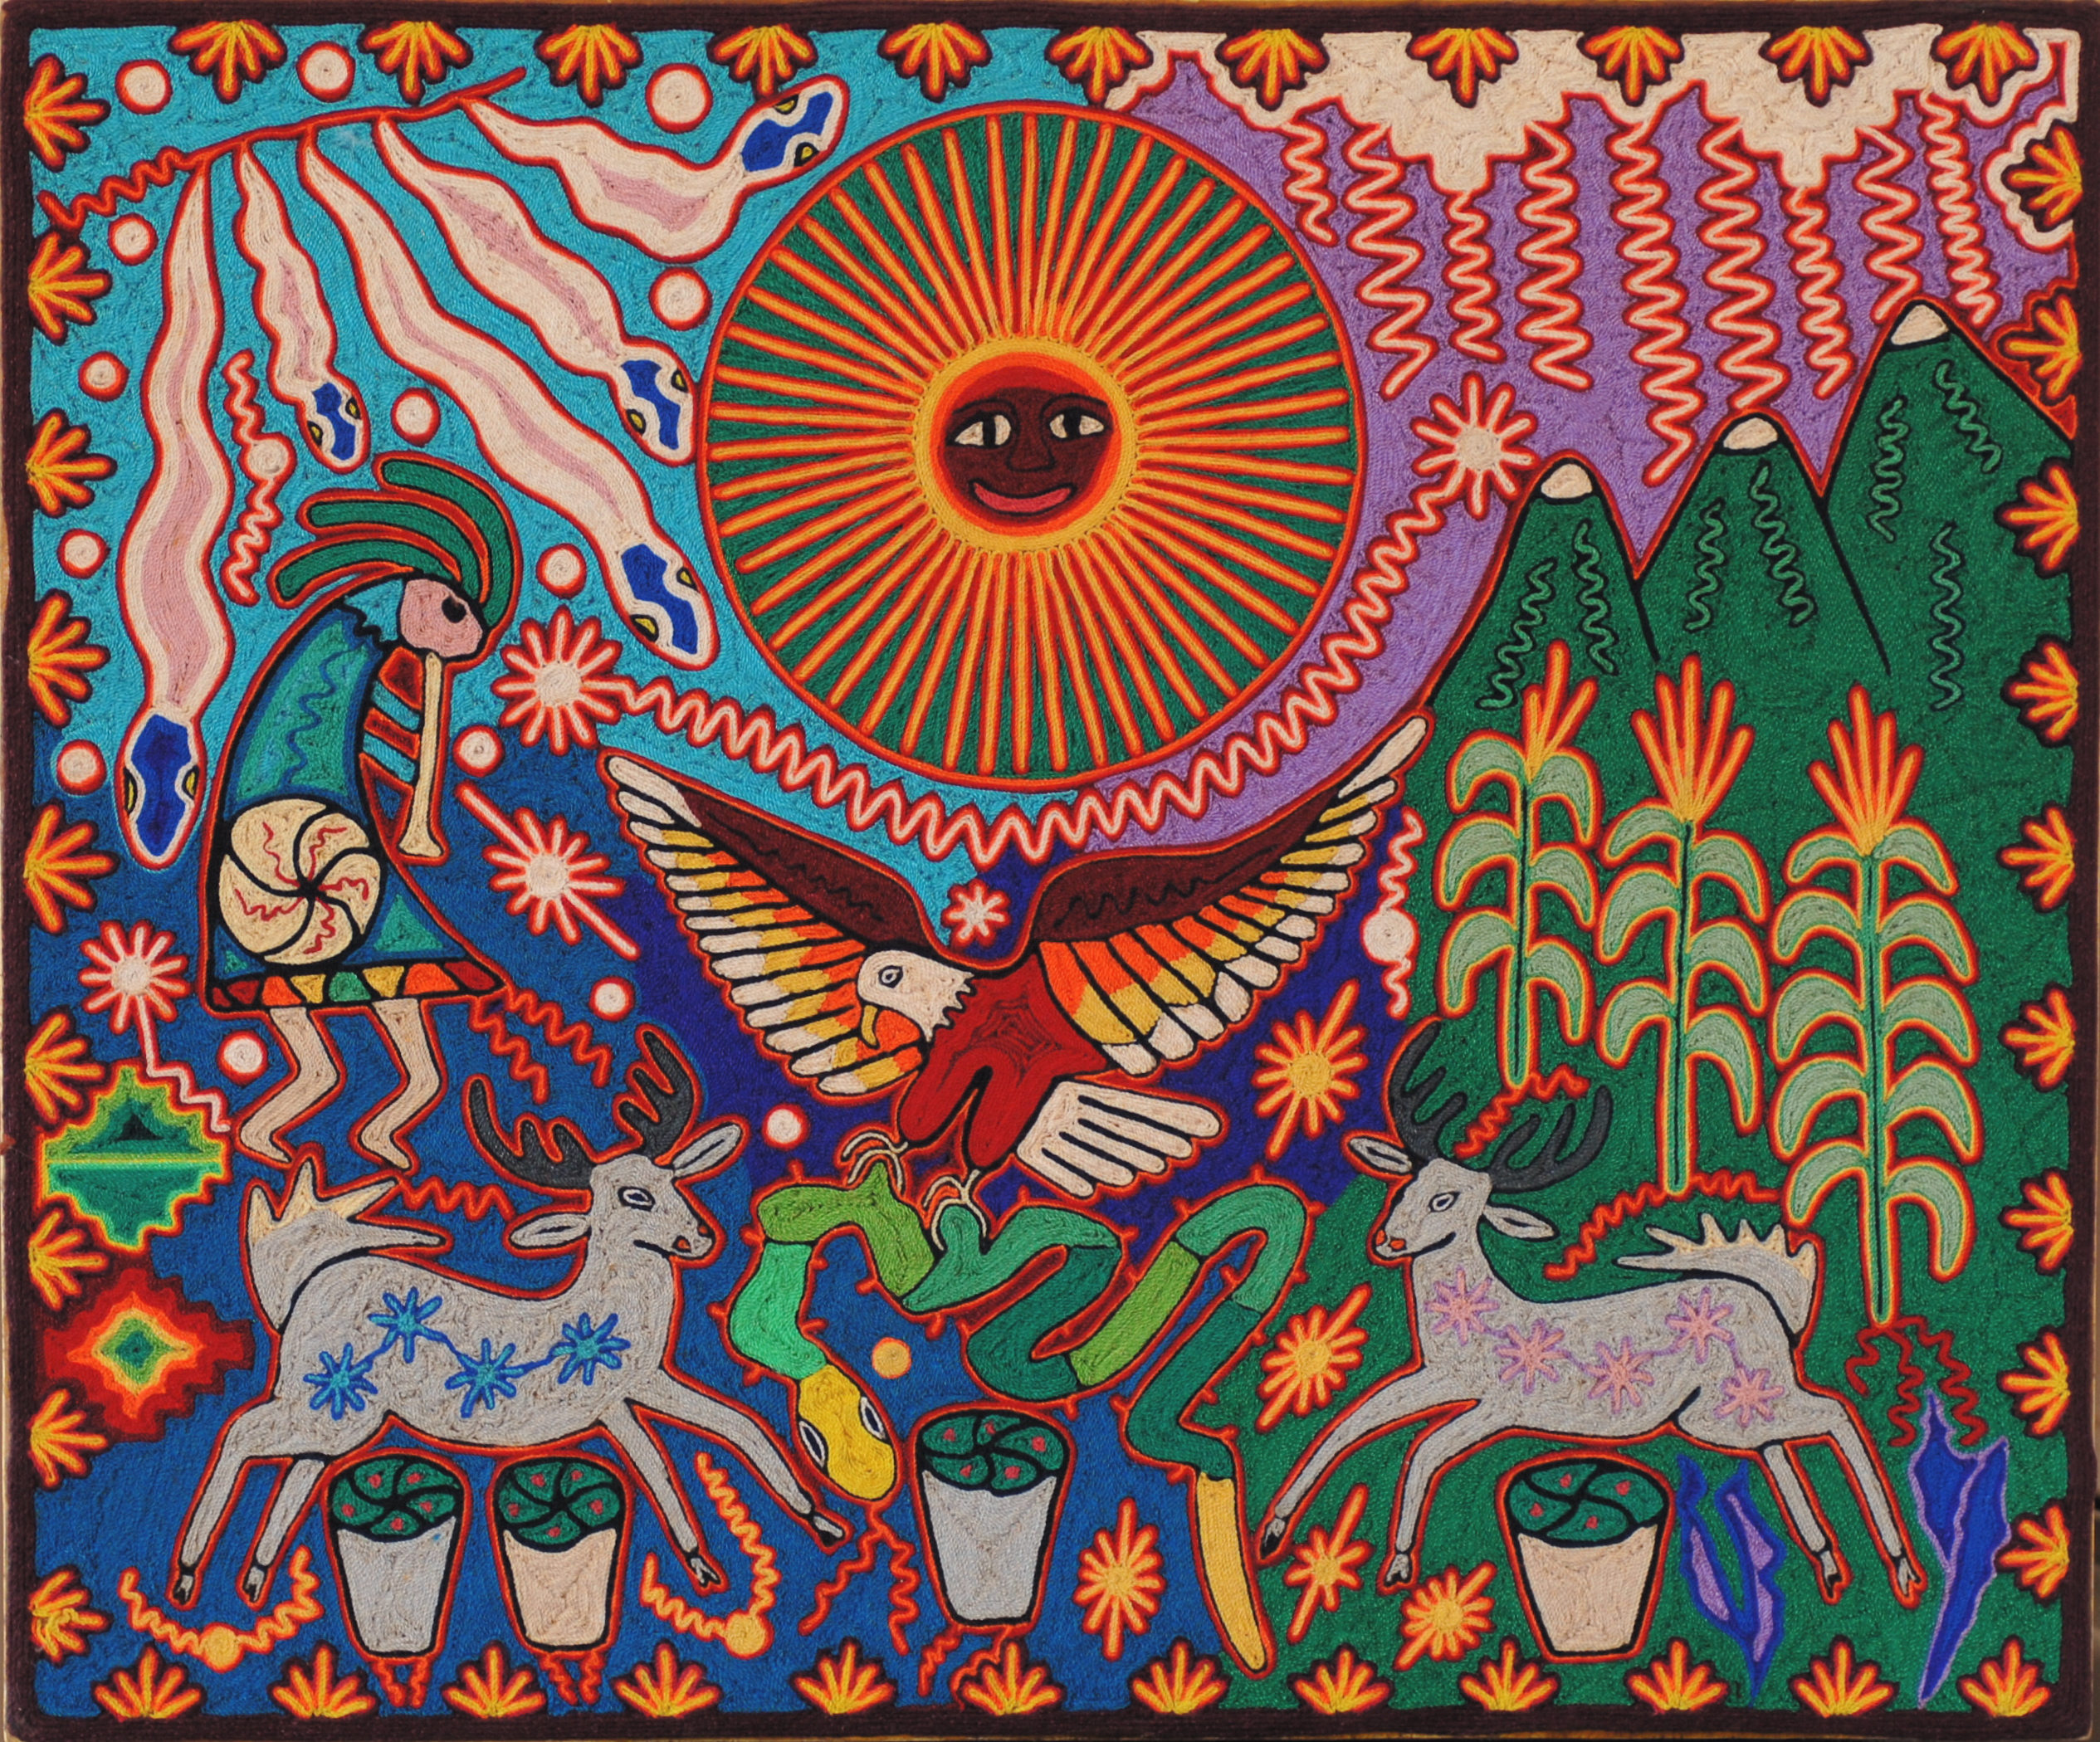 Arte Huichol Hd Index Of Huichol Images Awg Files